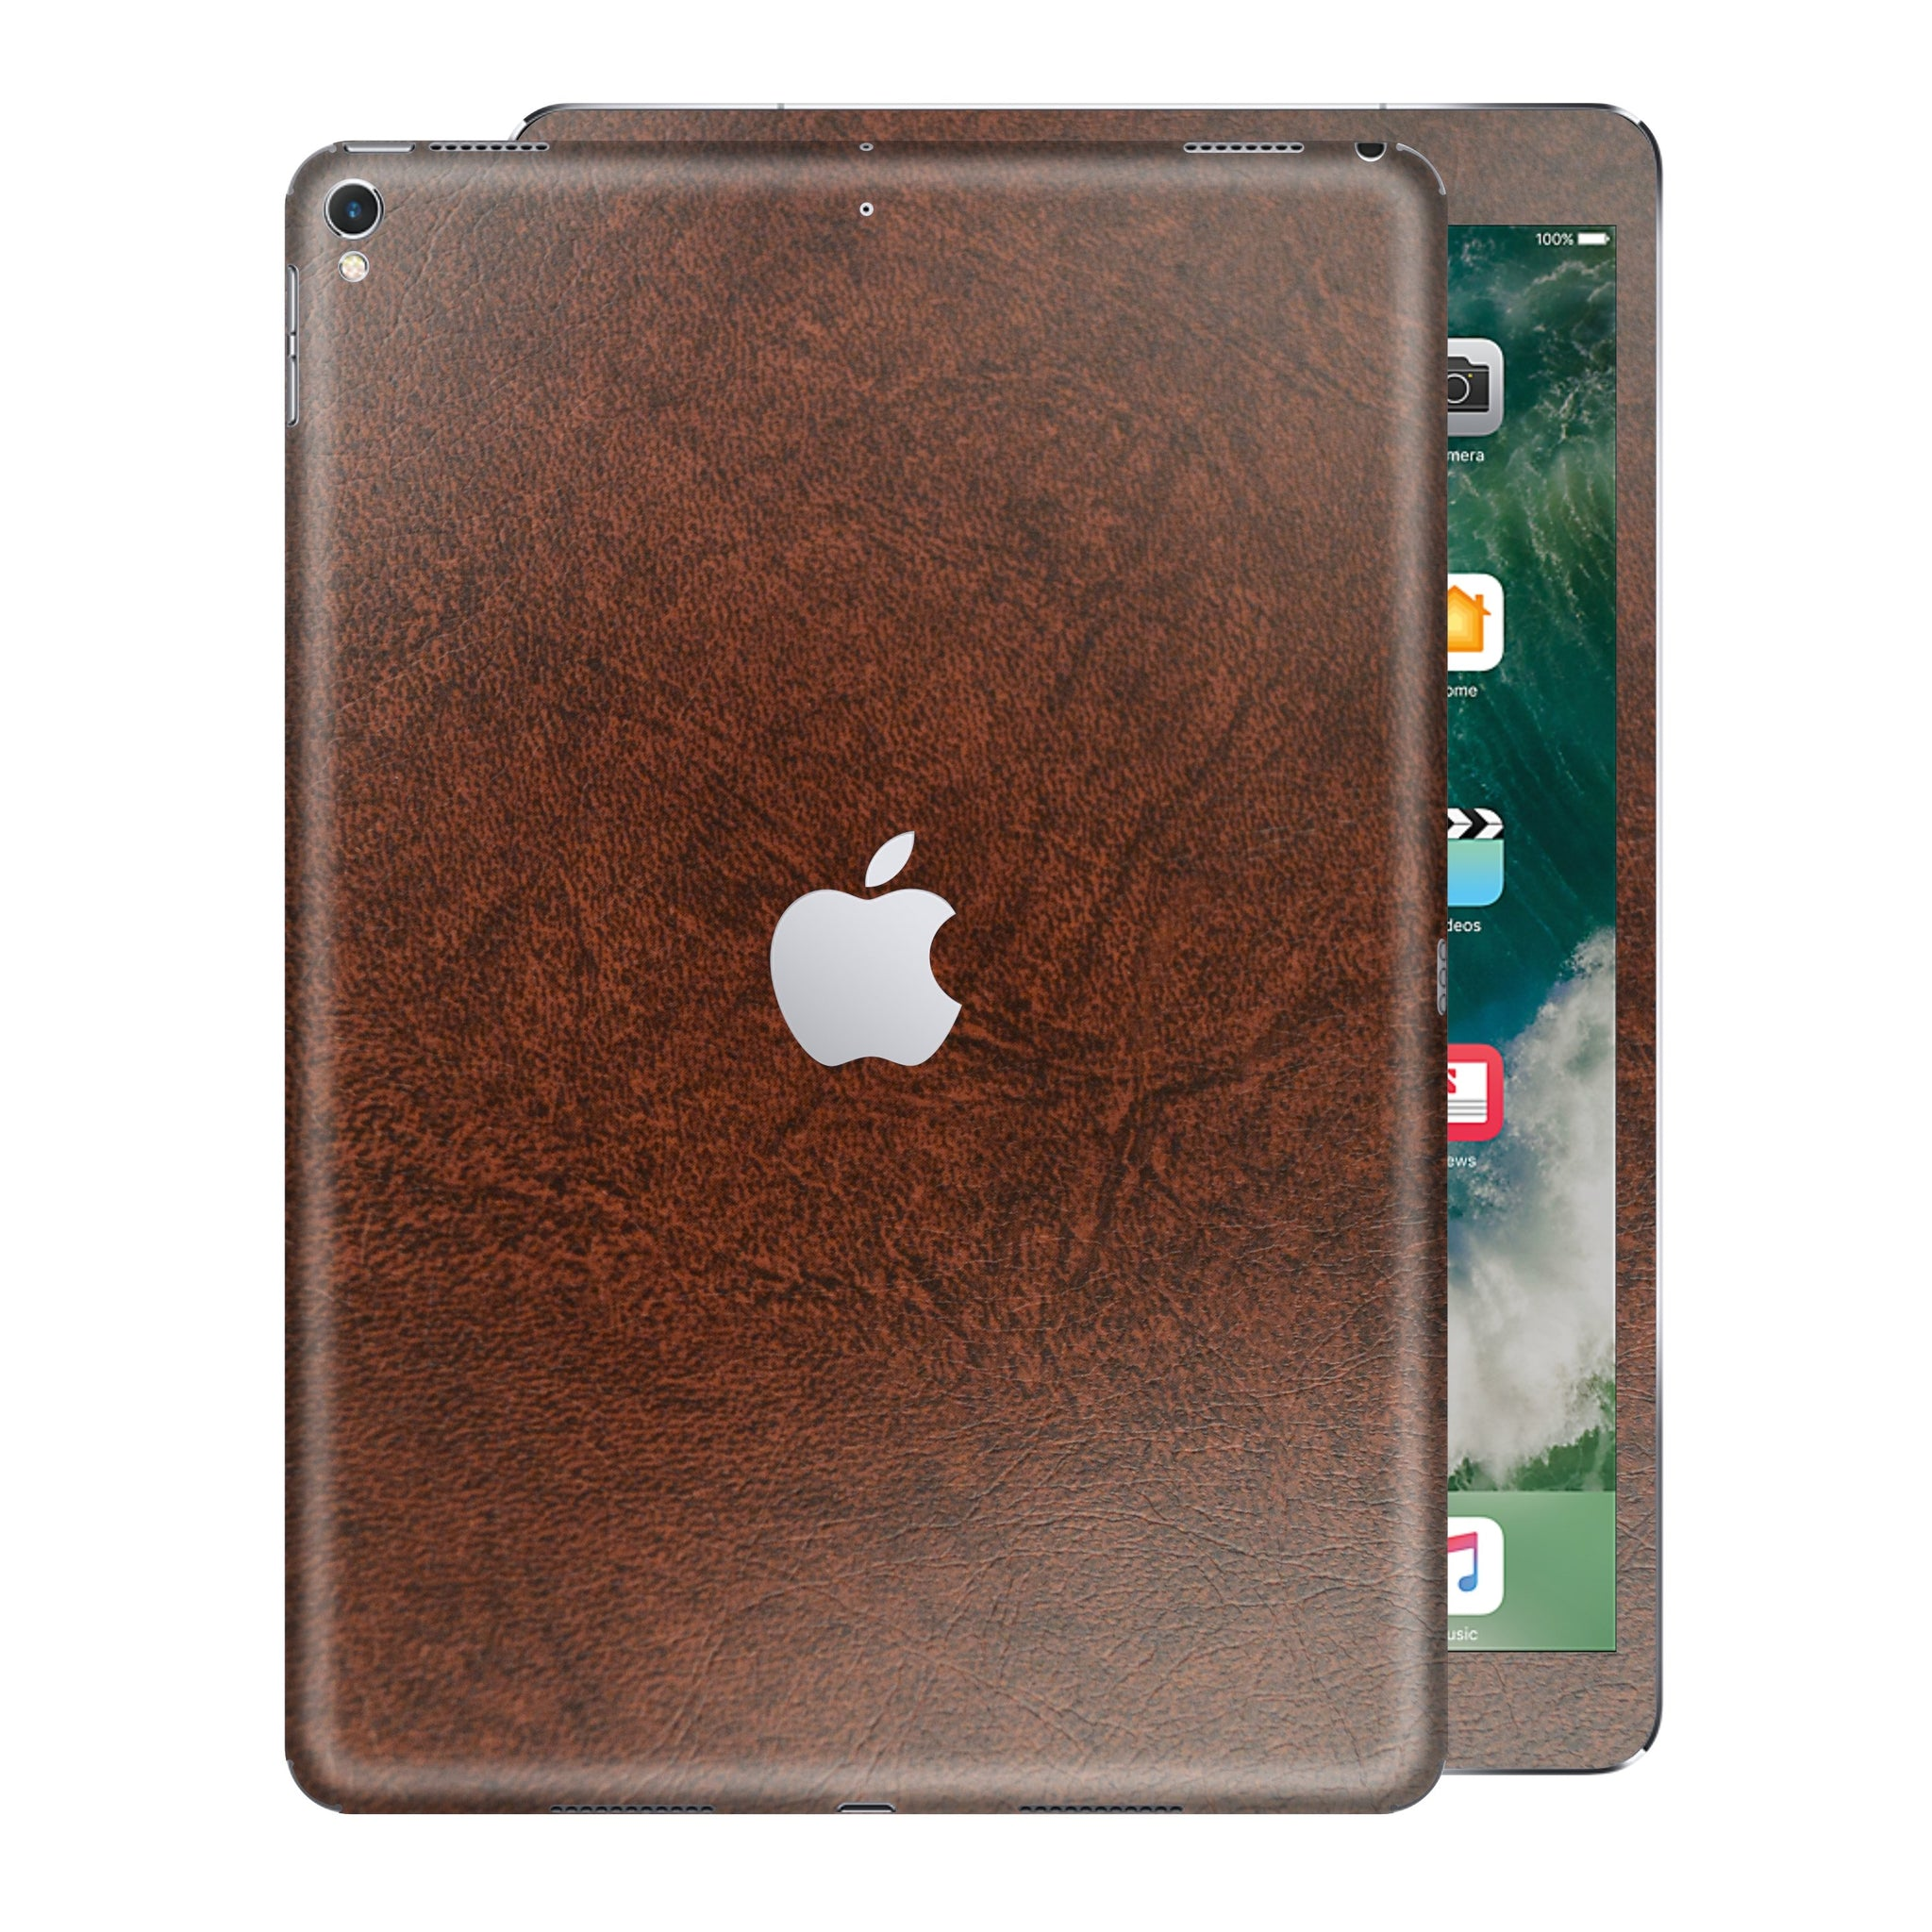 iPad PRO 10.5 inch 2017 Luxuria Brown Leather Skin Wrap Sticker Decal Cover Protector by EasySkinz